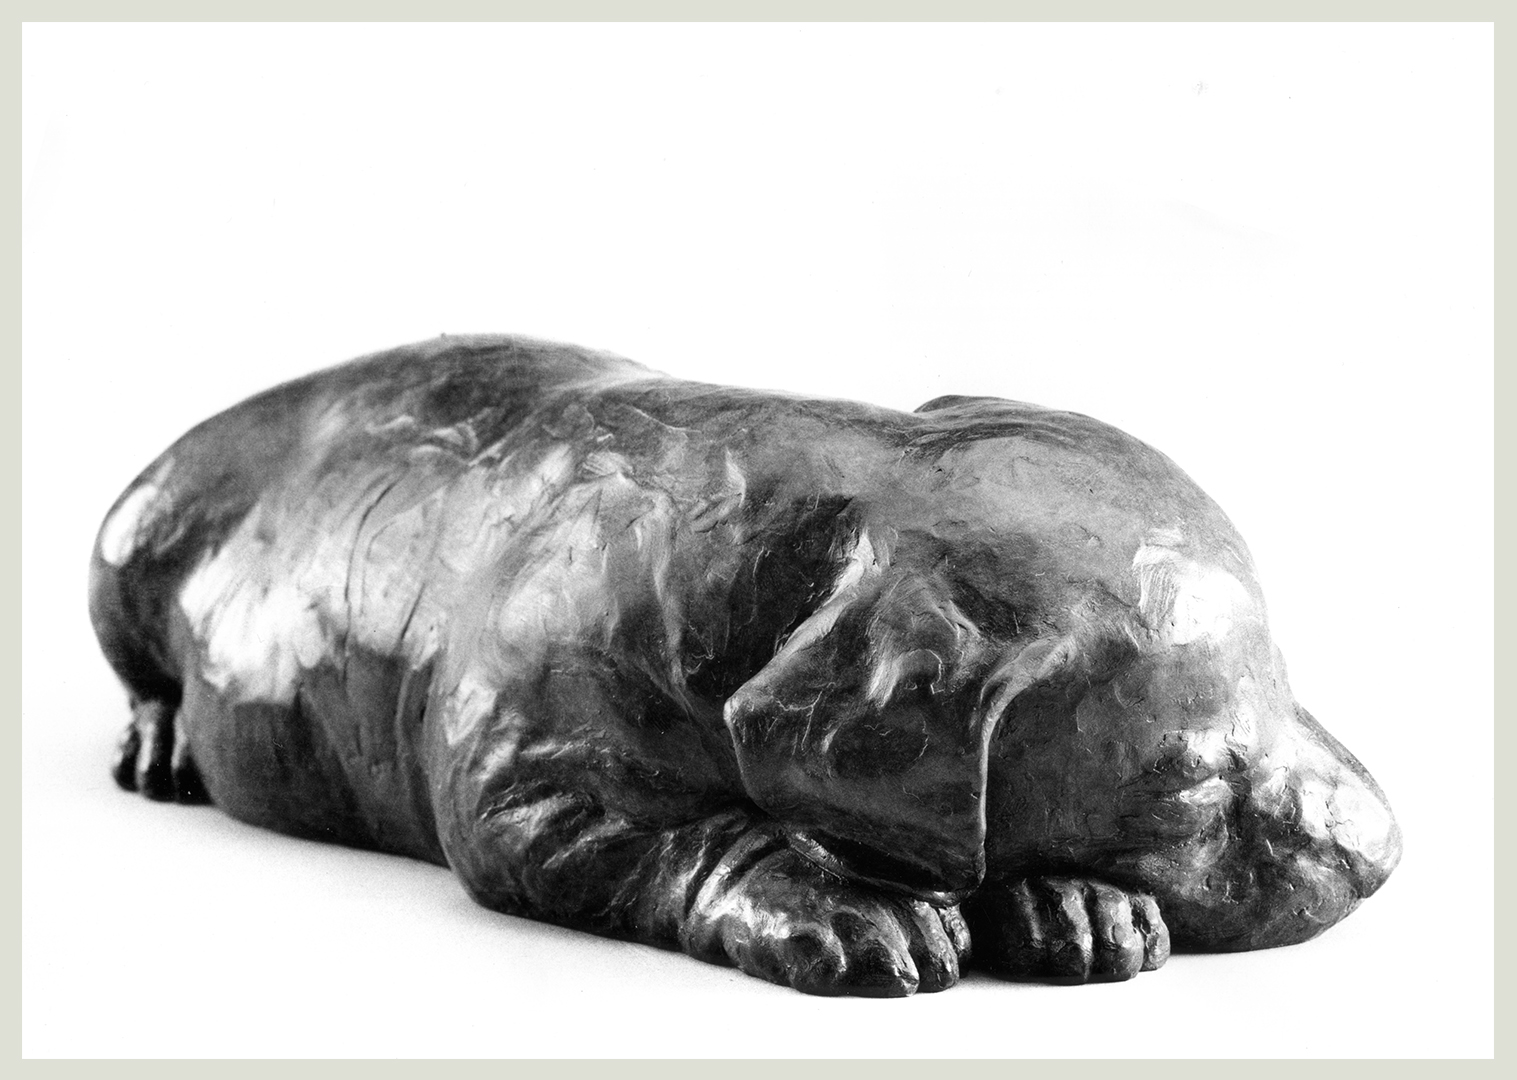 Realistic bronze sculpture of a sleeping puppy head resting on front paws slightly turned left